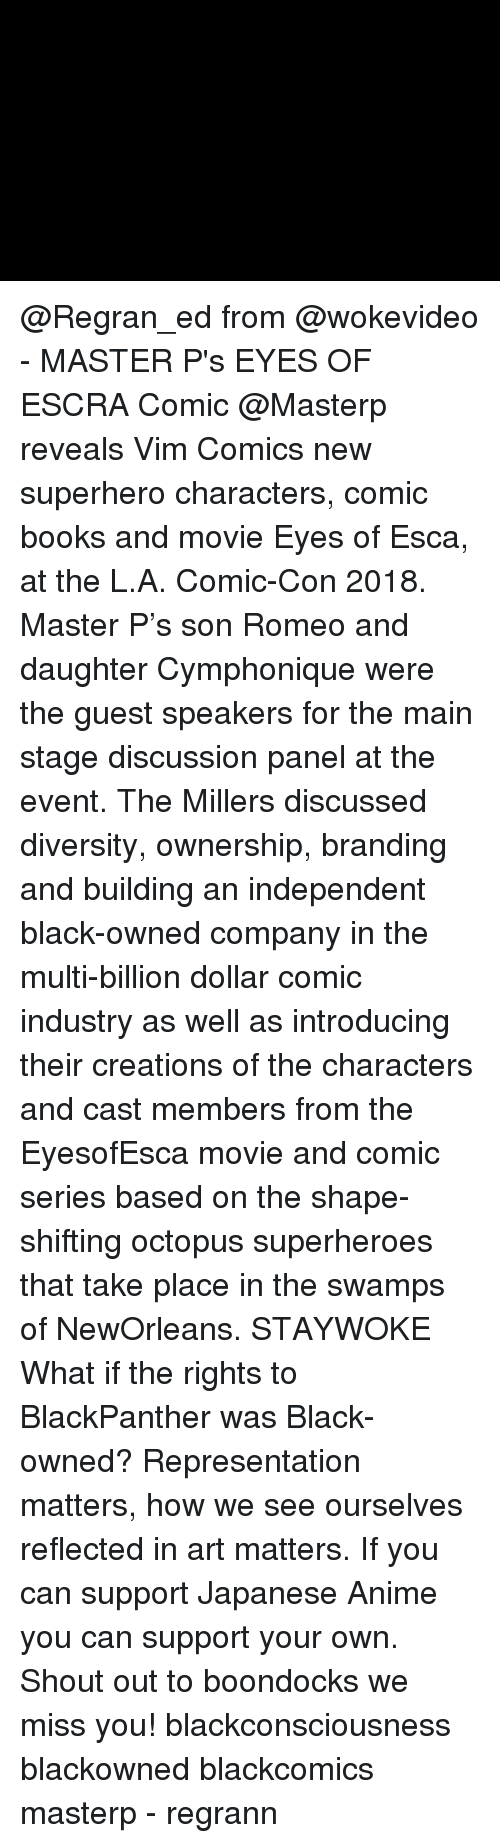 Anime, Books, and Master P: @Regran_ed from @wokevideo - MASTER P's EYES OF ESCRA Comic @Masterp reveals Vim Comics new superhero characters, comic books and movie Eyes of Esca, at the L.A. Comic-Con 2018. Master P's son Romeo and daughter Cymphonique were the guest speakers for the main stage discussion panel at the event. The Millers discussed diversity, ownership, branding and building an independent black-owned company in the multi-billion dollar comic industry as well as introducing their creations of the characters and cast members from the EyesofEsca movie and comic series based on the shape-shifting octopus superheroes that take place in the swamps of NewOrleans. STAYWOKE What if the rights to BlackPanther was Black-owned? Representation matters, how we see ourselves reflected in art matters. If you can support Japanese Anime you can support your own. Shout out to boondocks we miss you! blackconsciousness blackowned blackcomics masterp - regrann